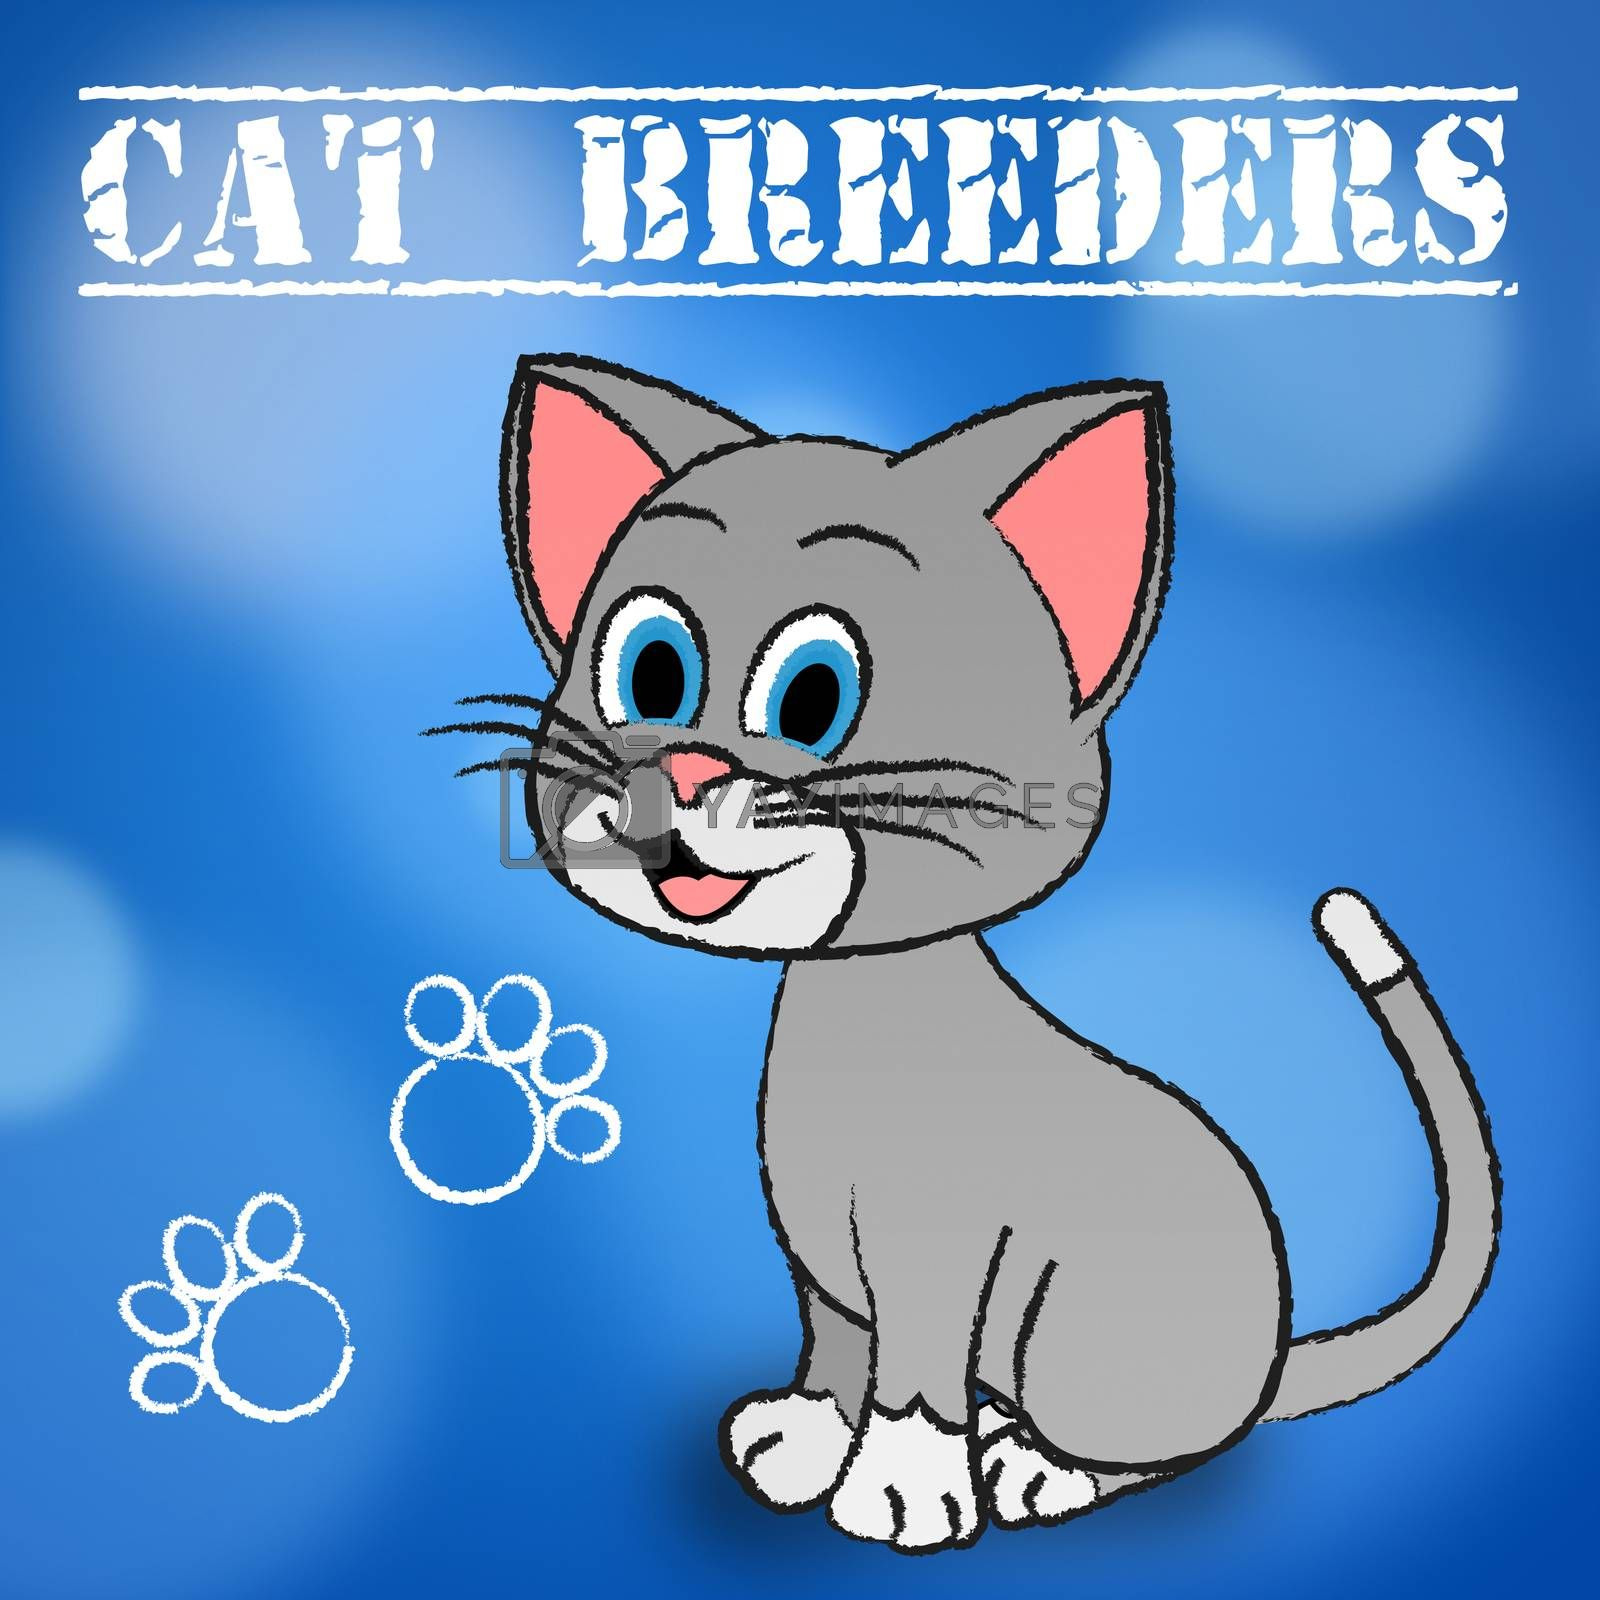 Cat Breeders Meaning Breeds Kitten And Reproducing